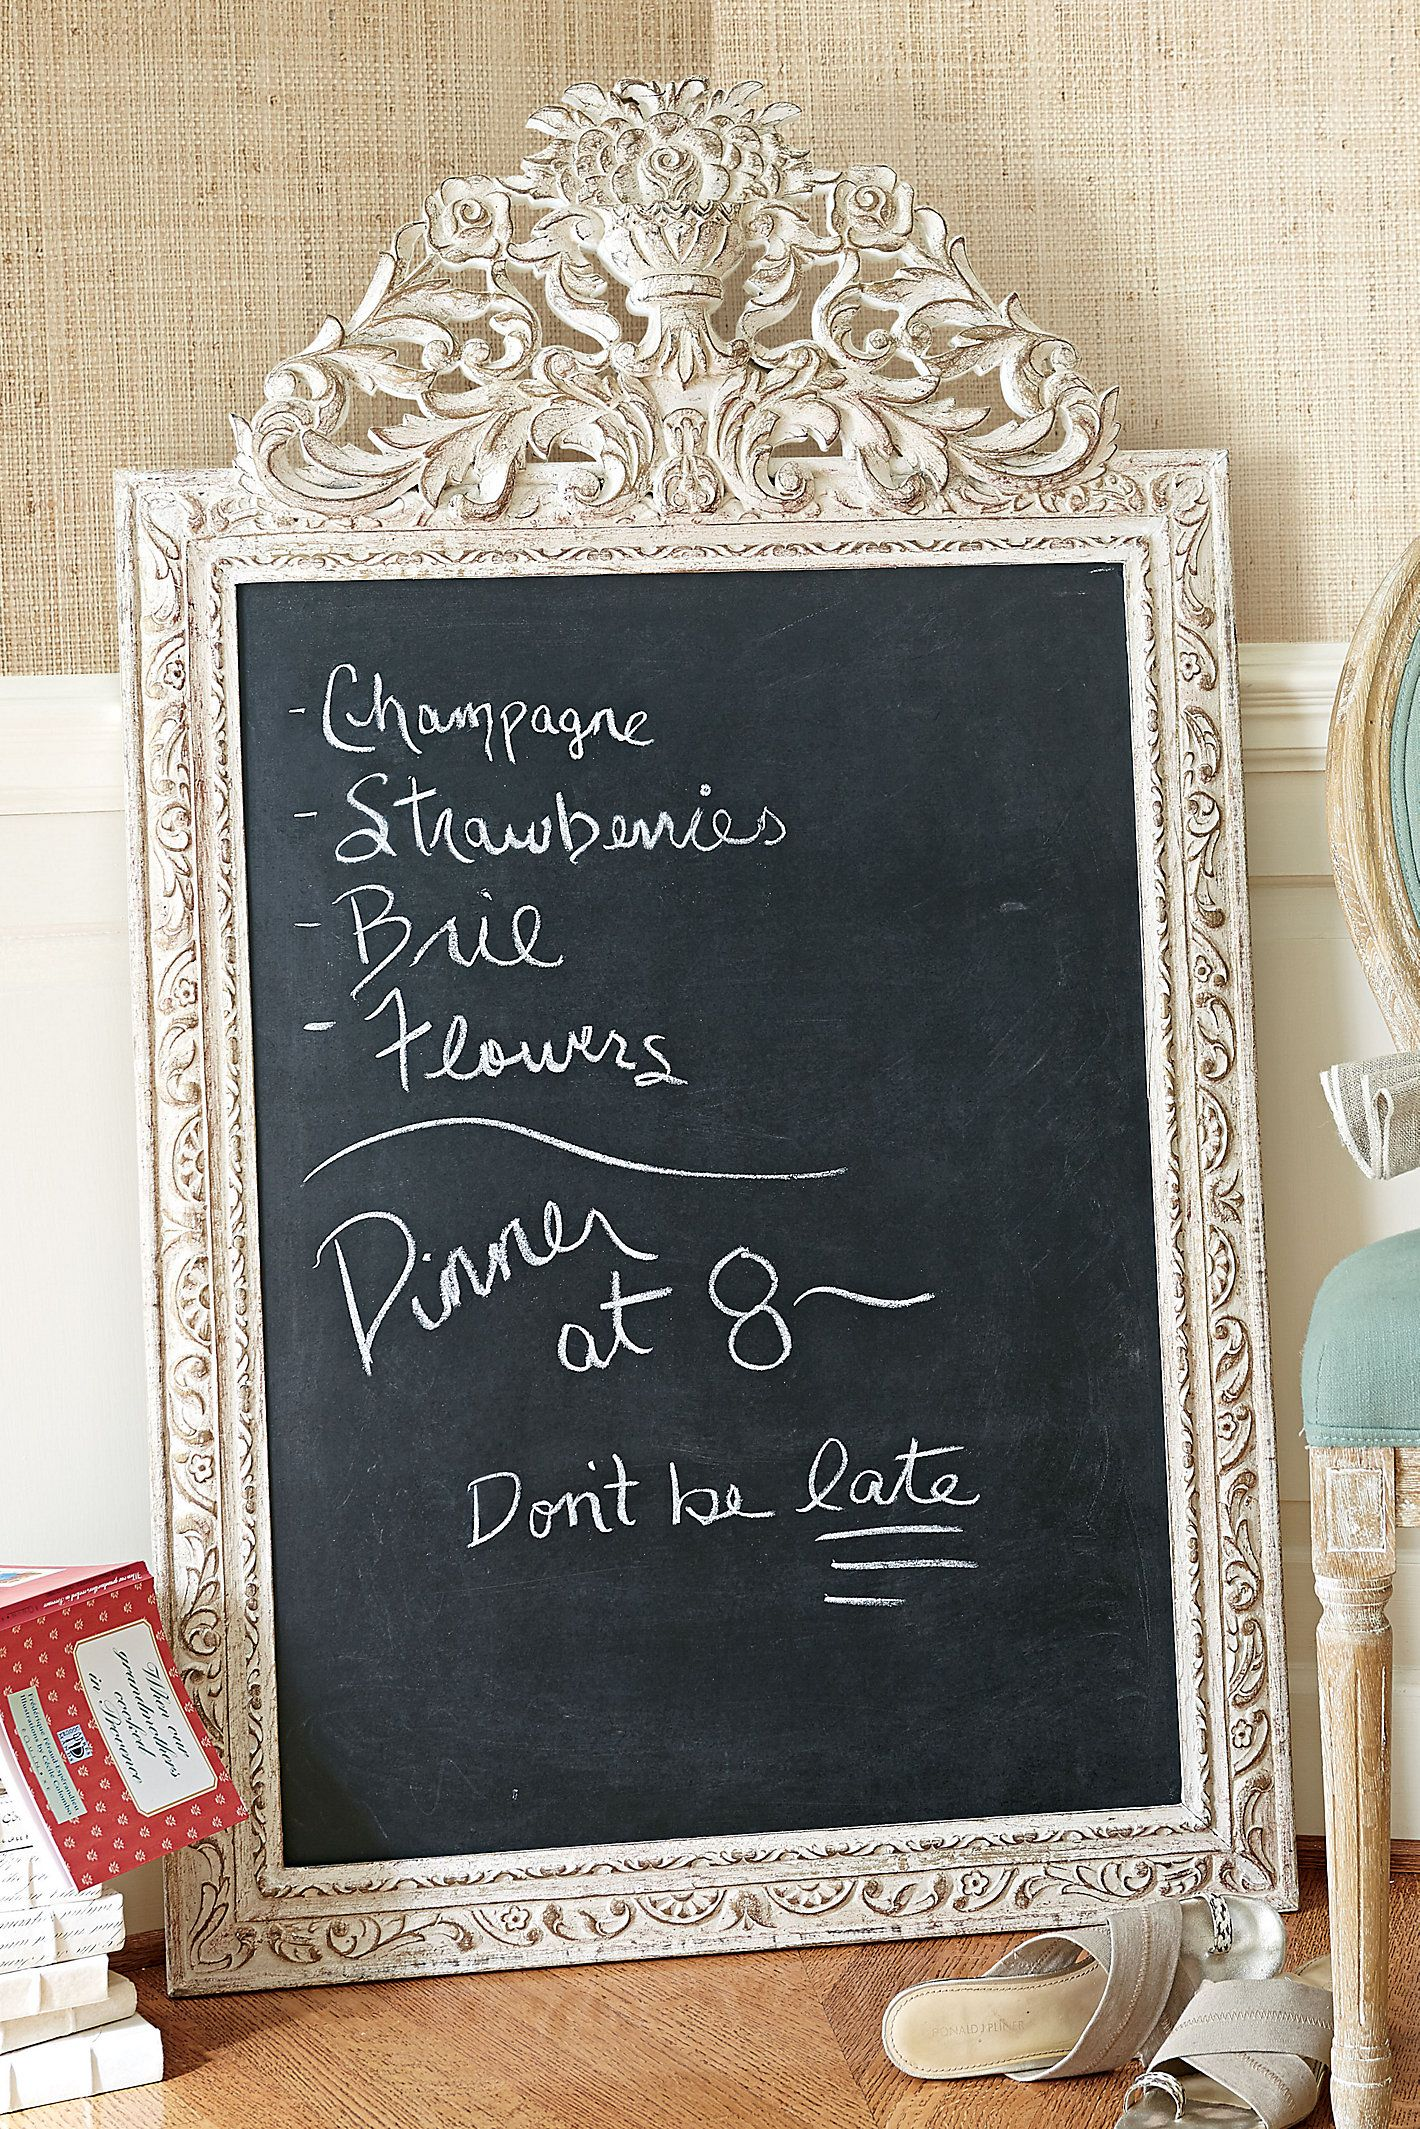 Inform your guests of your dinner menu, organize your family schedule, or just use it for fun quotes - you'll love our Allier Framed Chalkboard - now on sale!